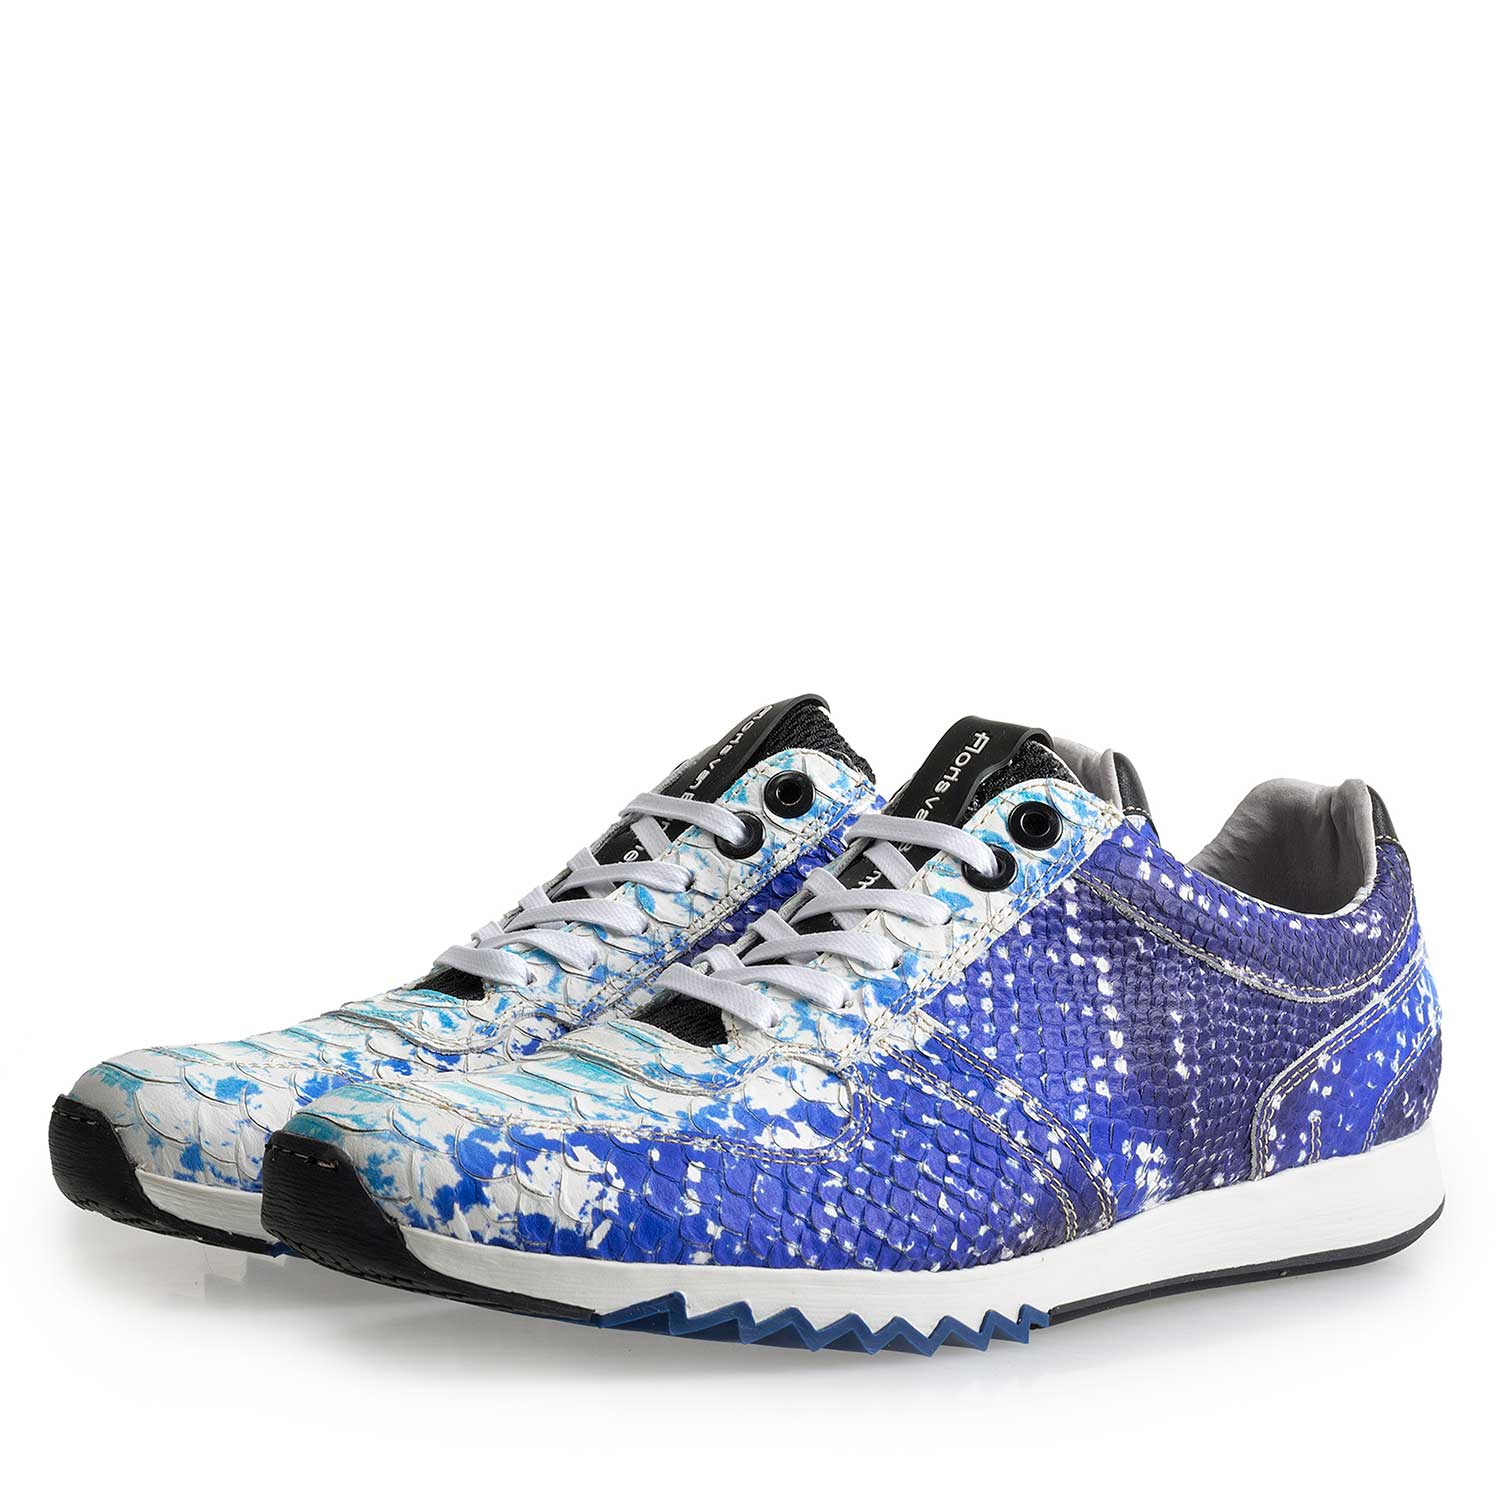 16227/11 - Blue leather sneaker with snake print